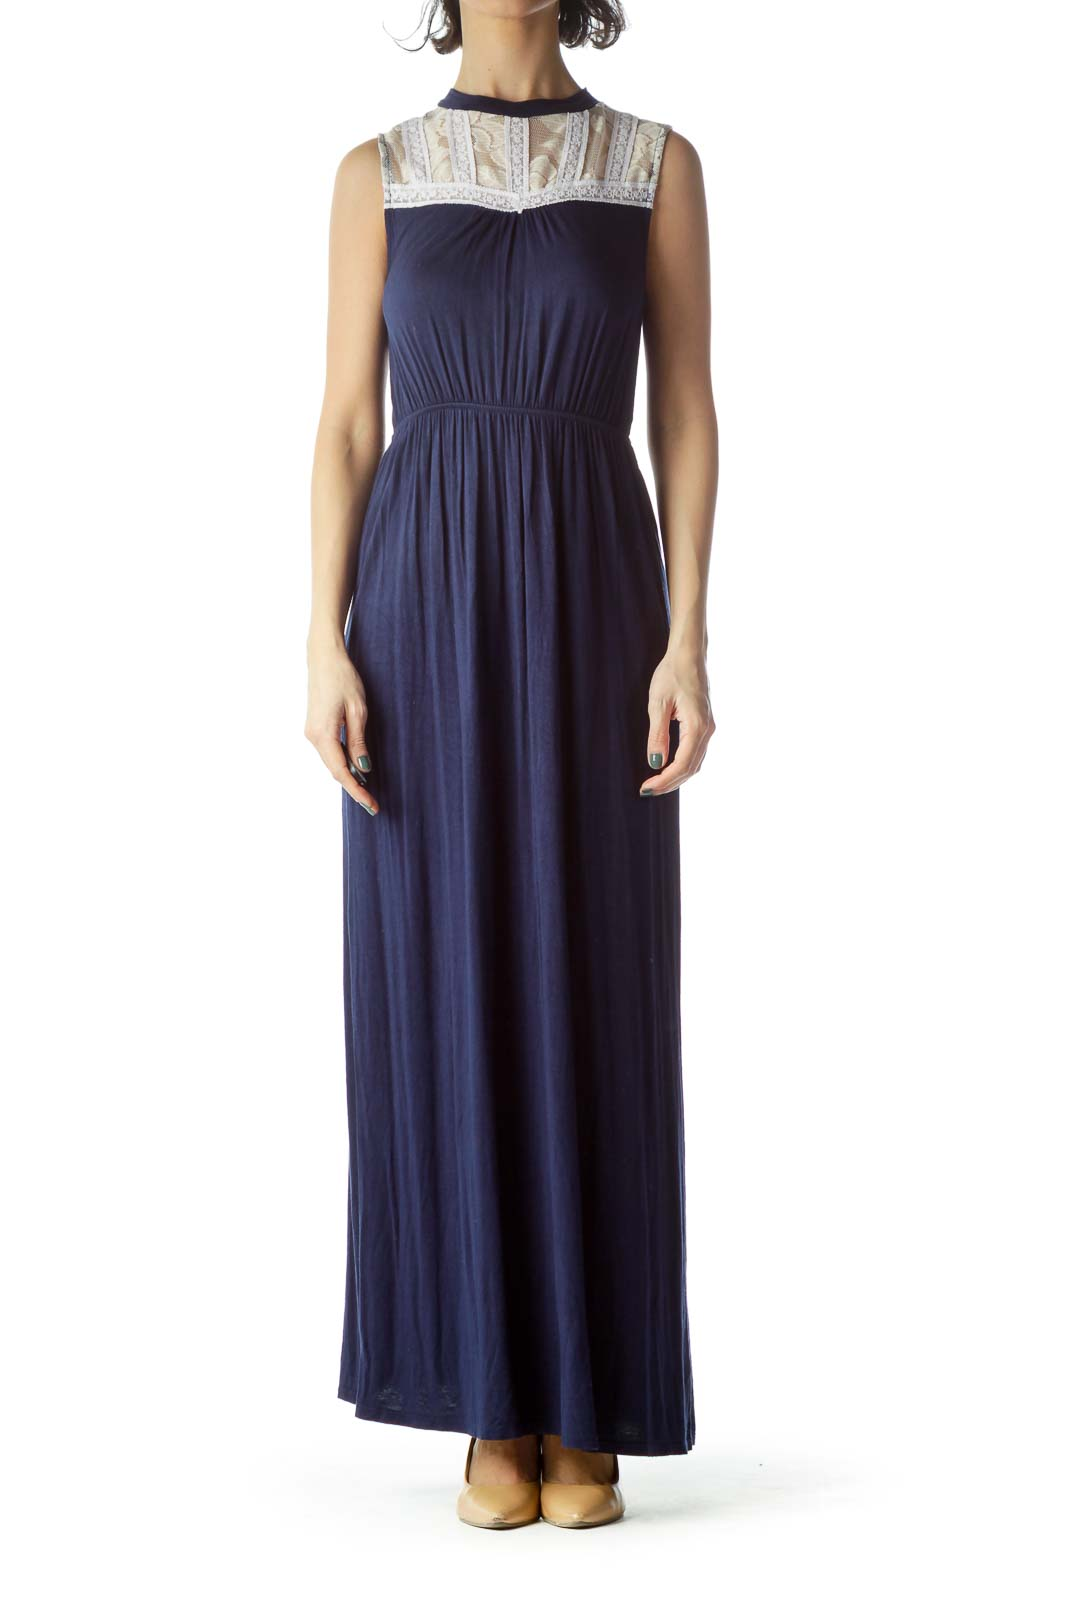 Navy Blue Cream Lace Jersey-Knit Maxi Dress Front